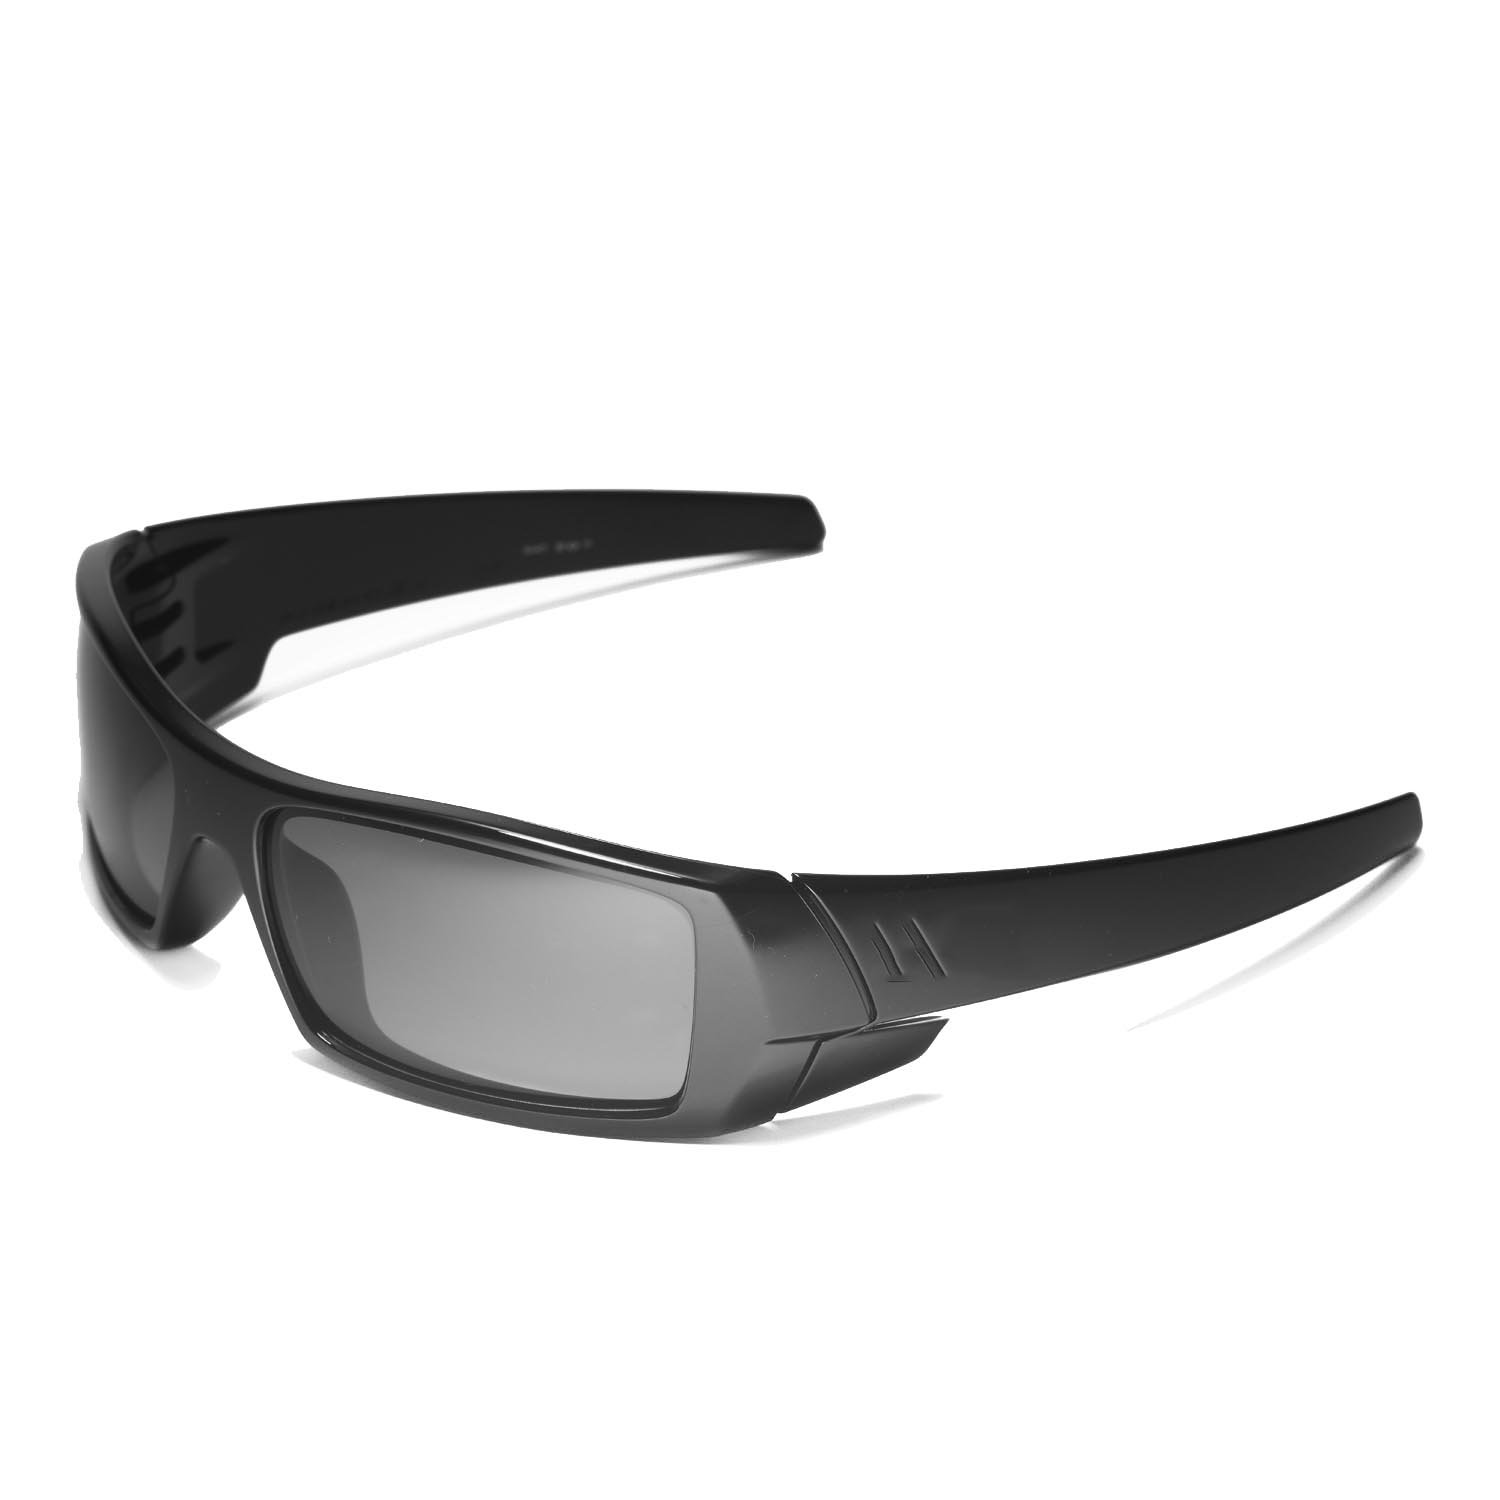 Amazon.com: Cofery Replacement Lenses for Oakley Gascan ...